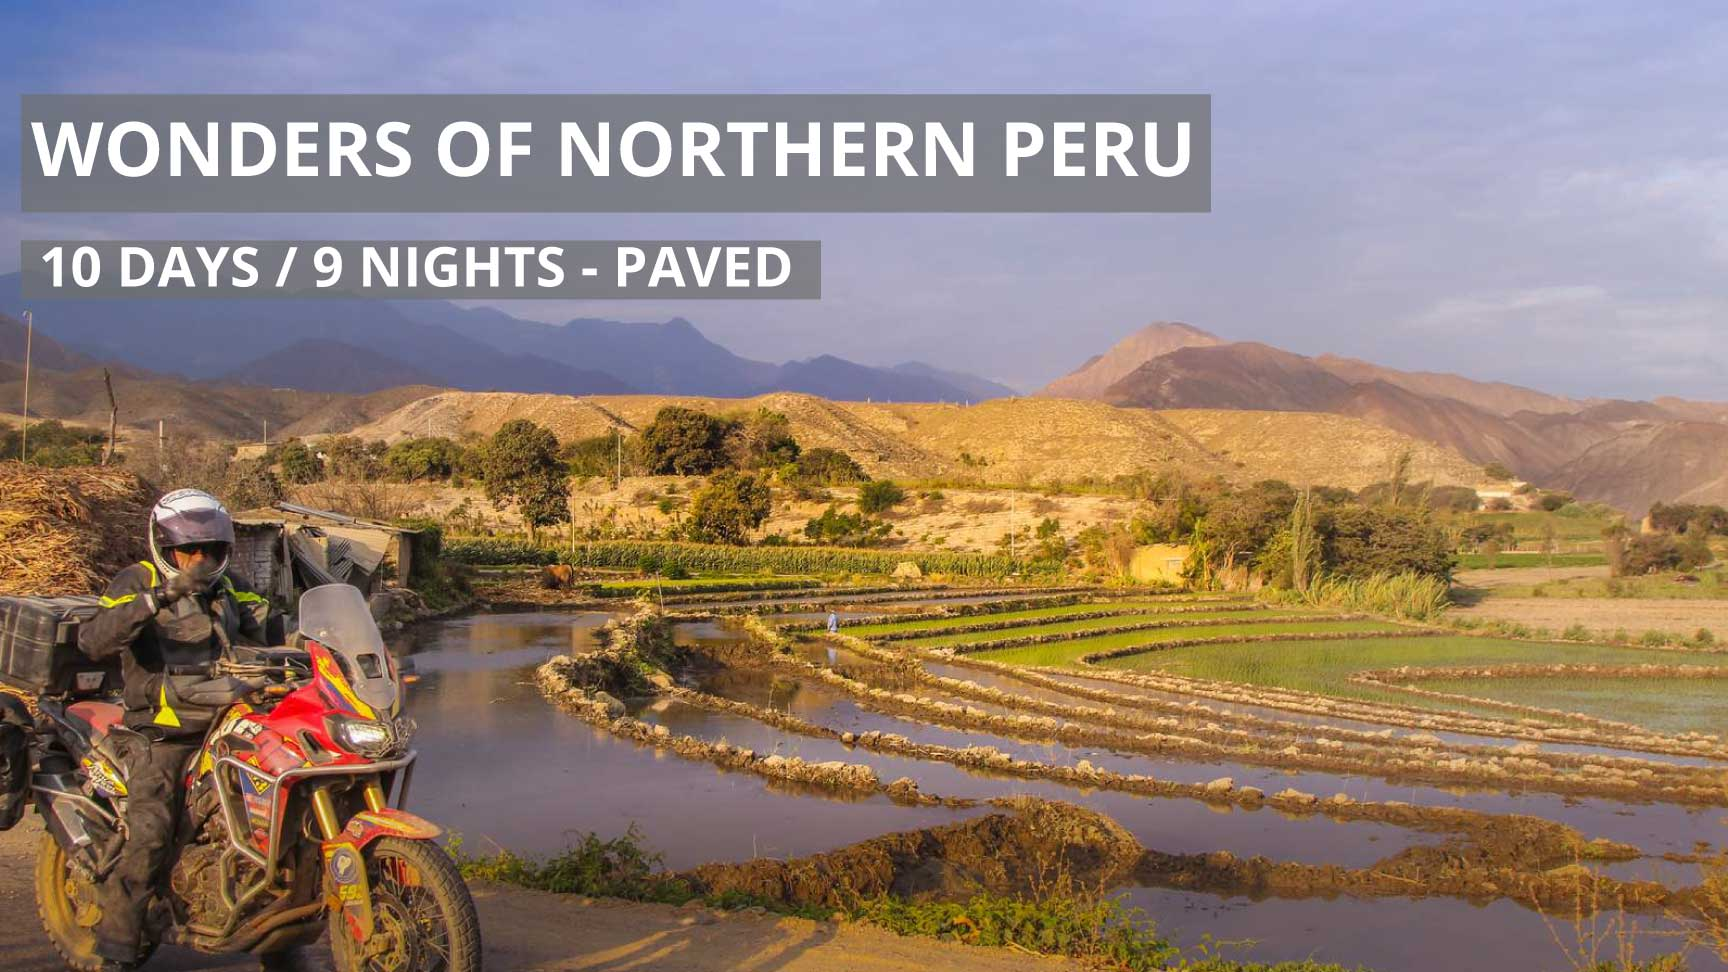 WOnders of Northern Peru Tour Box